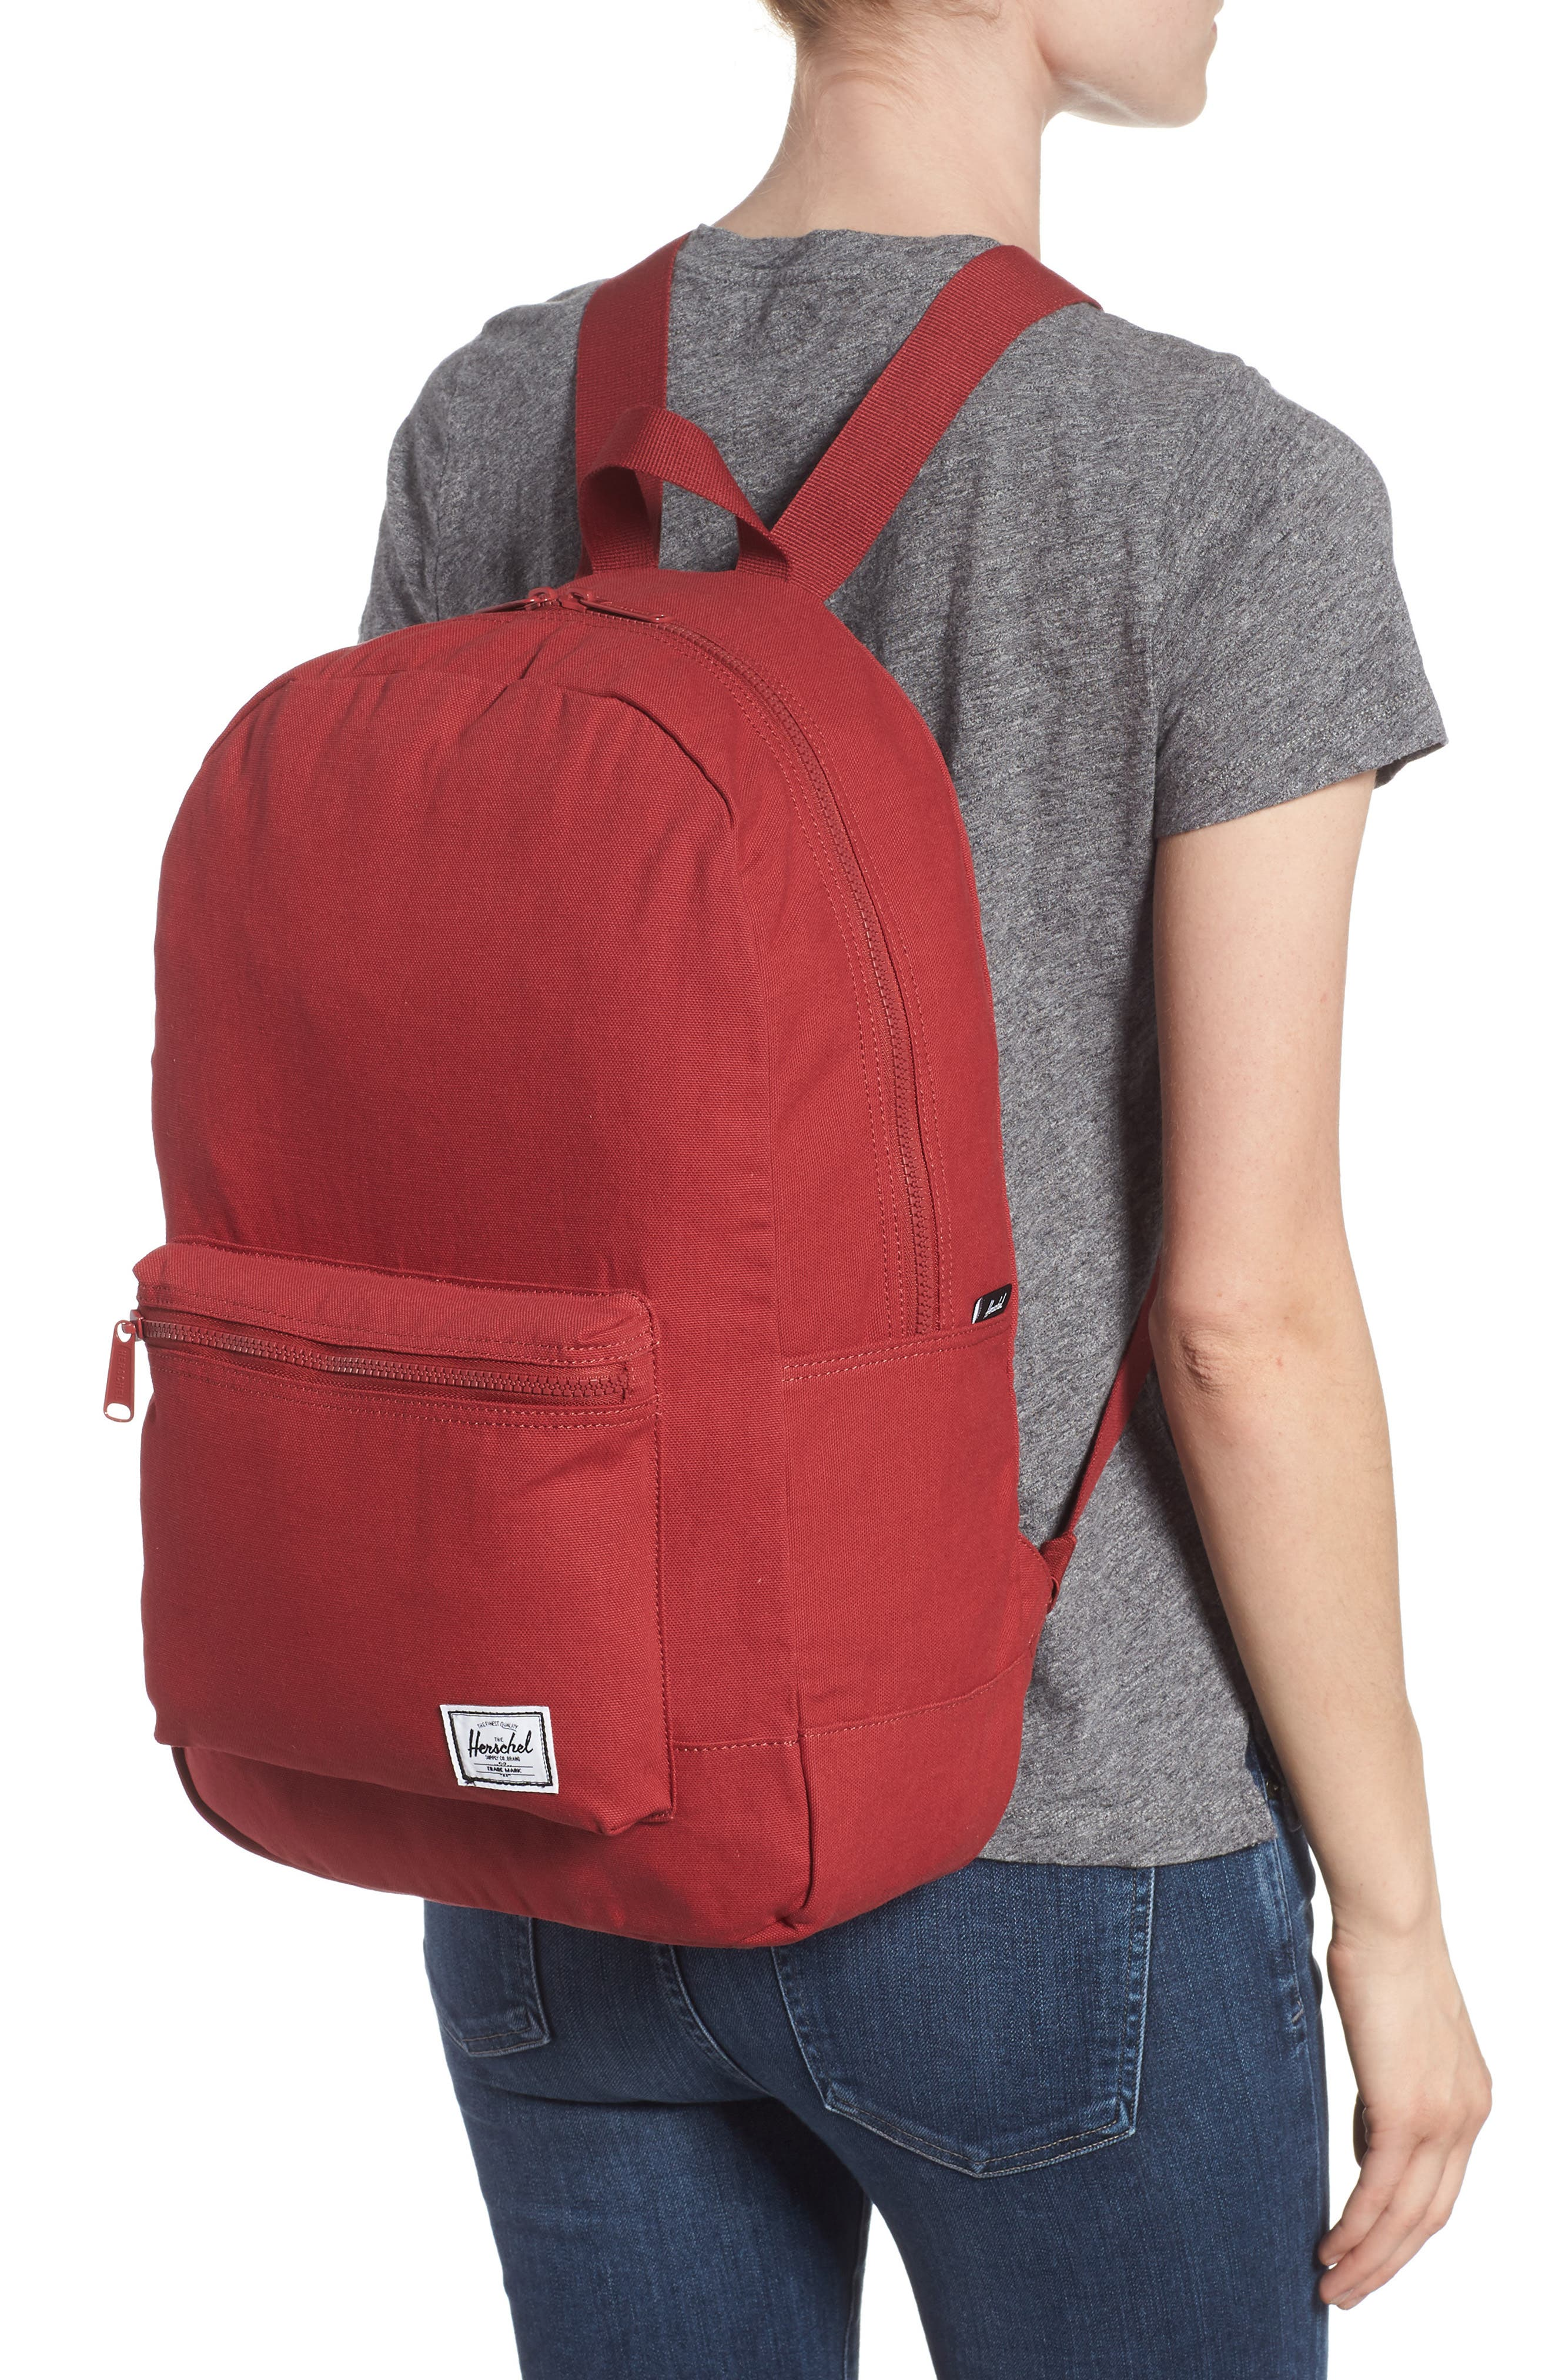 Cotton Casuals Daypack Backpack,                             Alternate thumbnail 12, color,